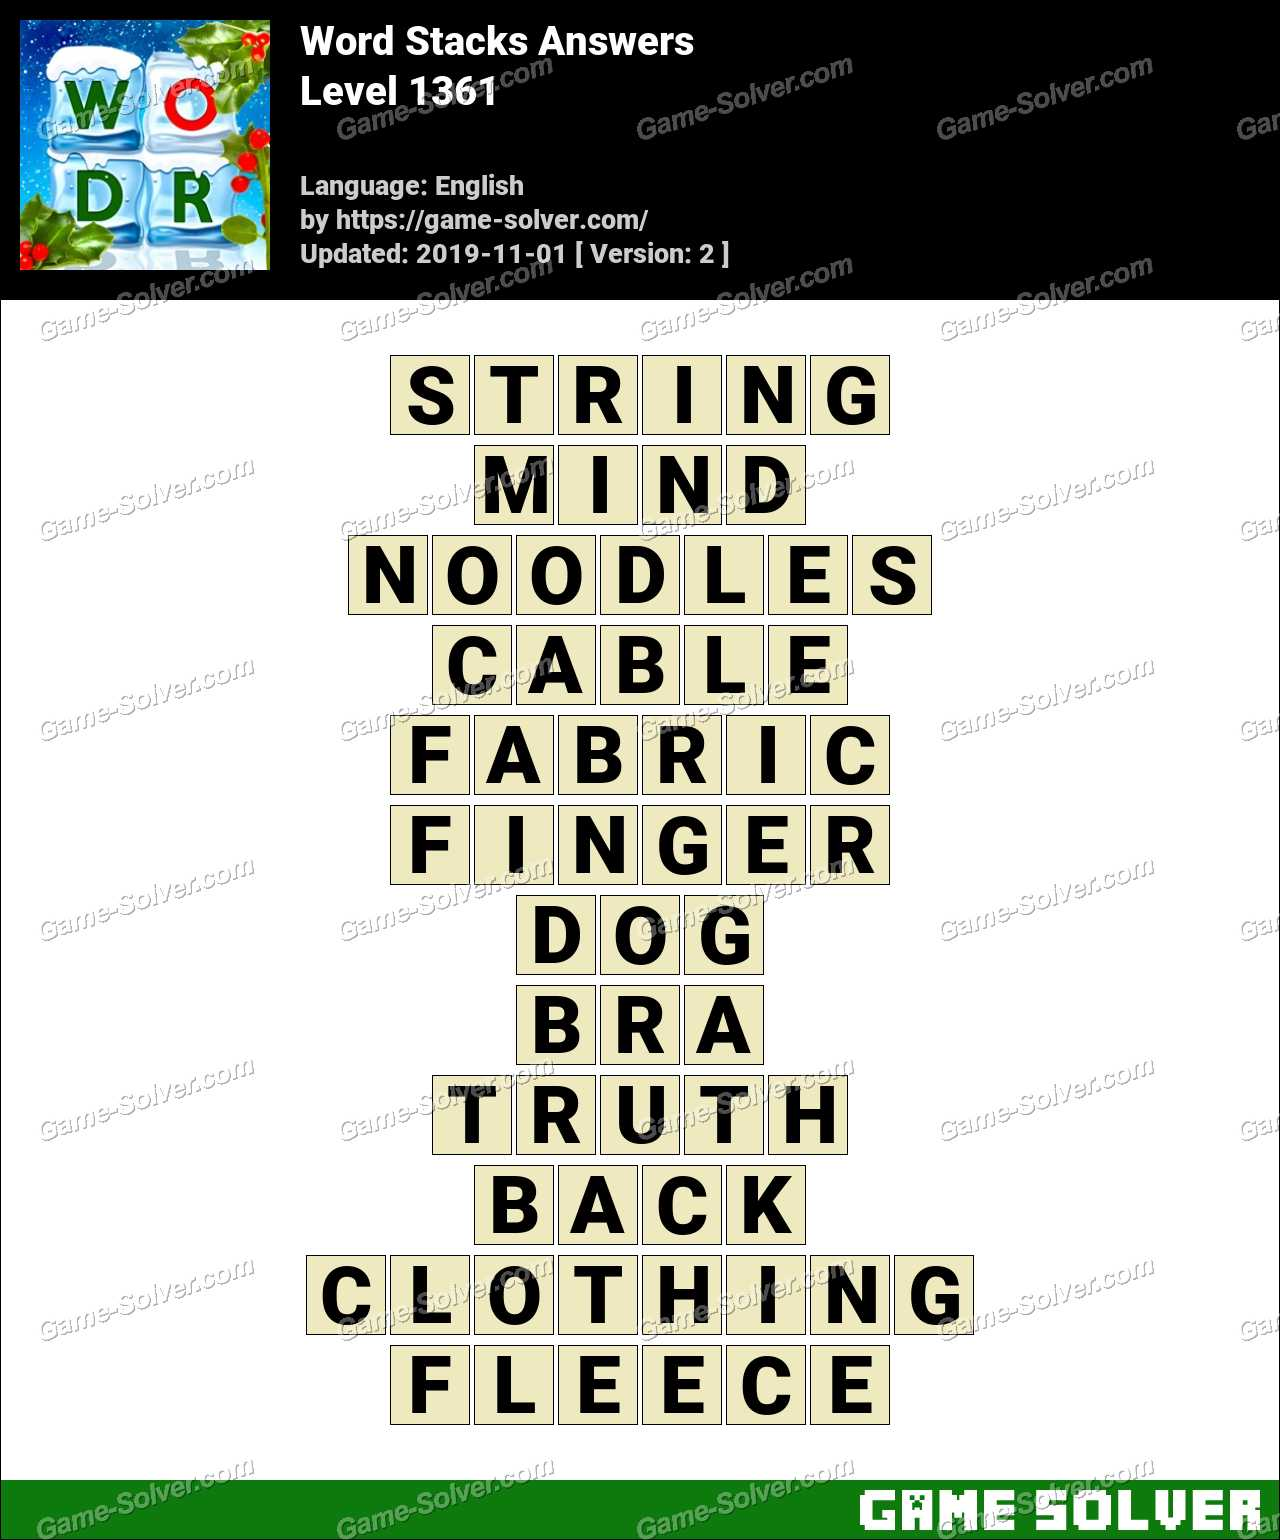 Word Stacks Level 1361 Answers